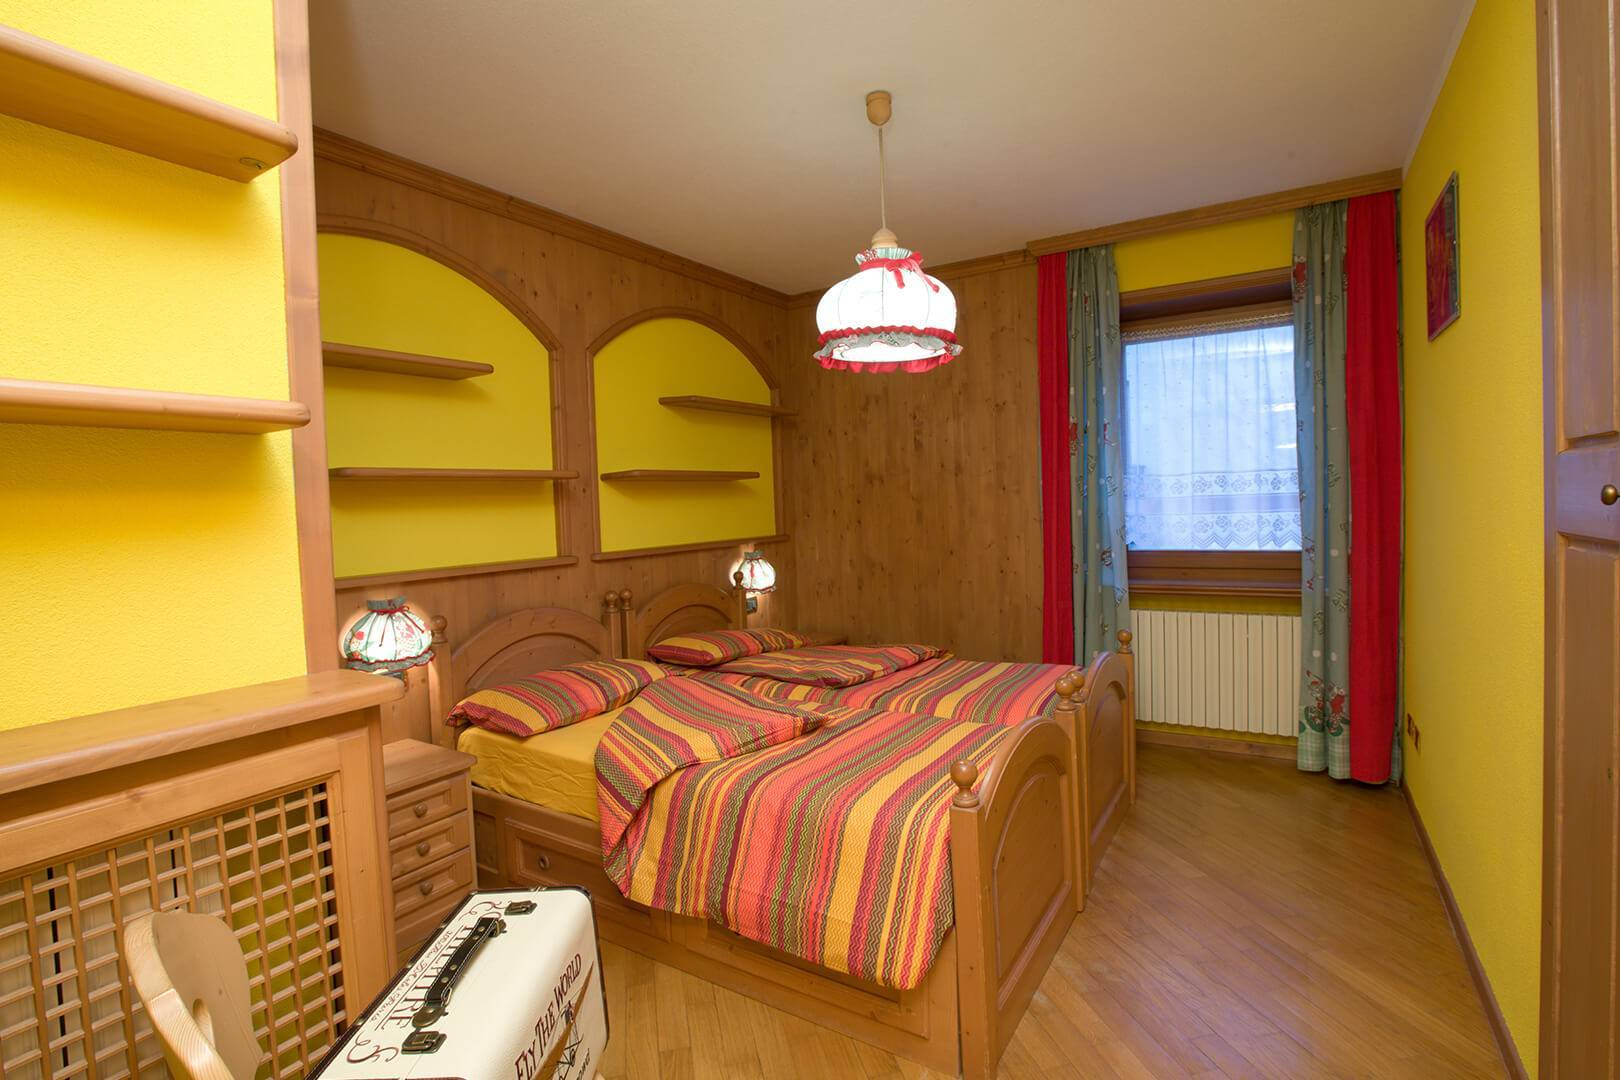 The Giallo Apartment has 2 double bedrooms